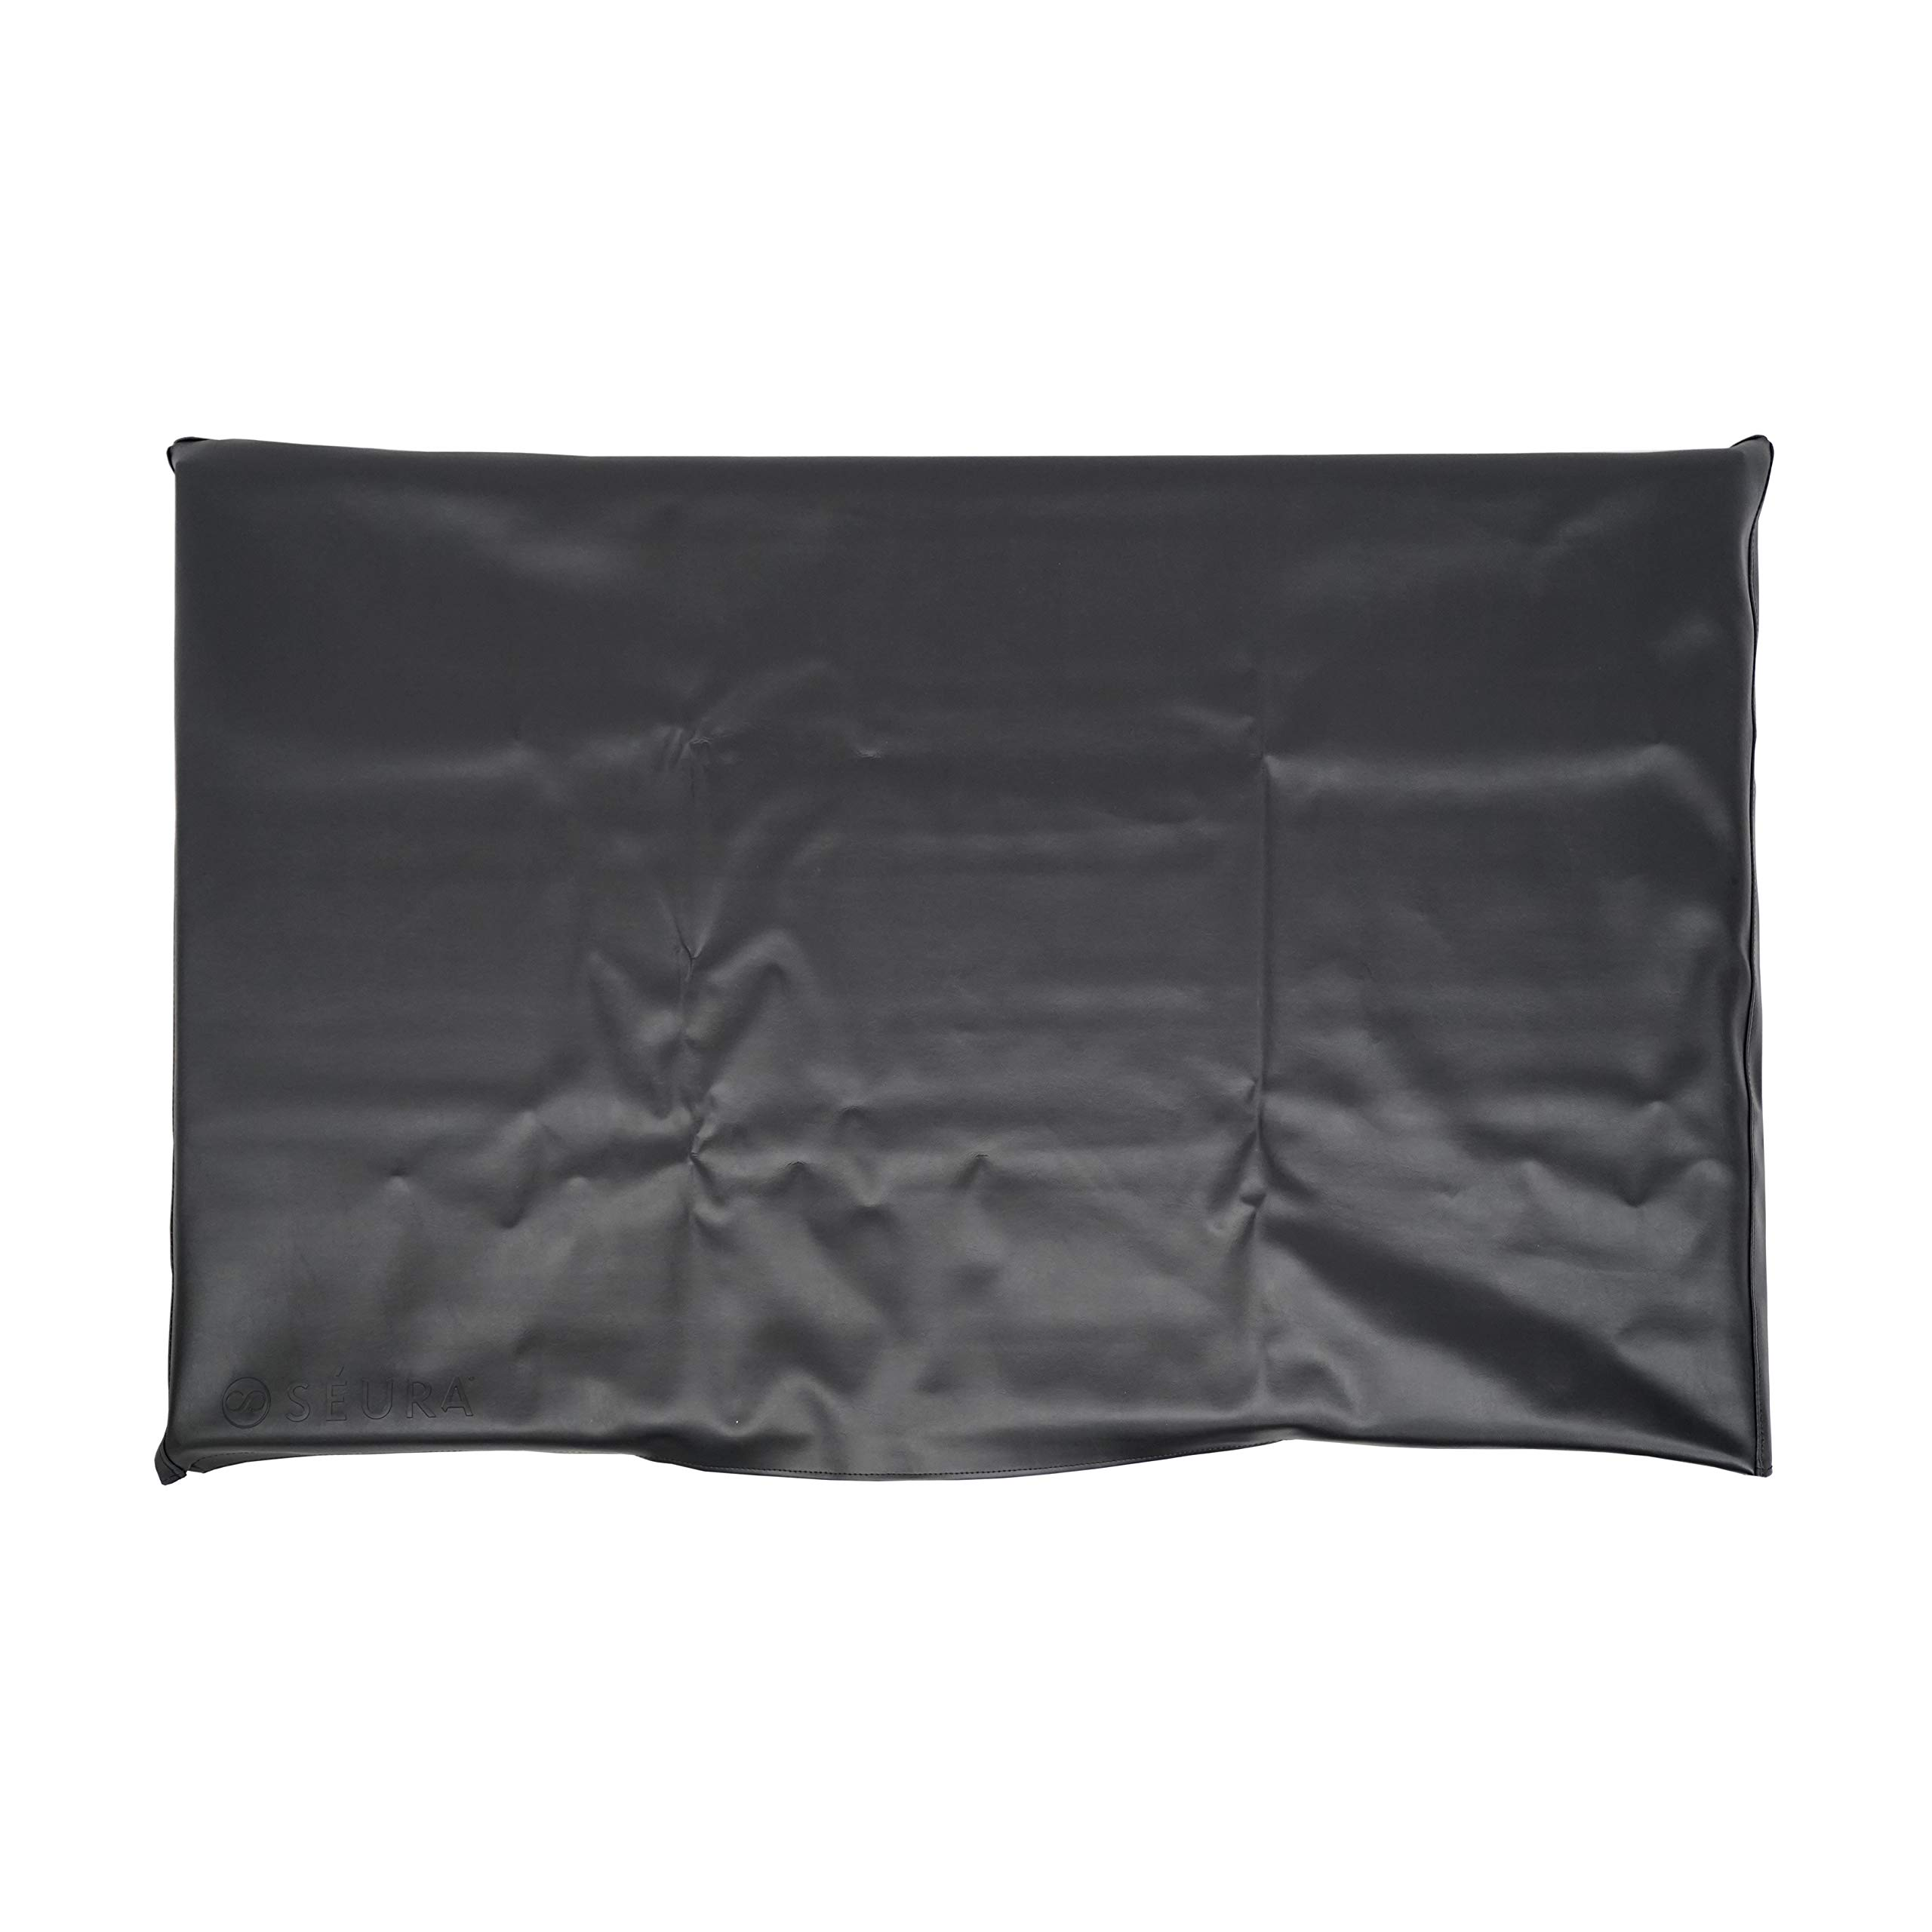 Séura Outdoor TV Cover (for 55'' Séura Ultra Bright TV)